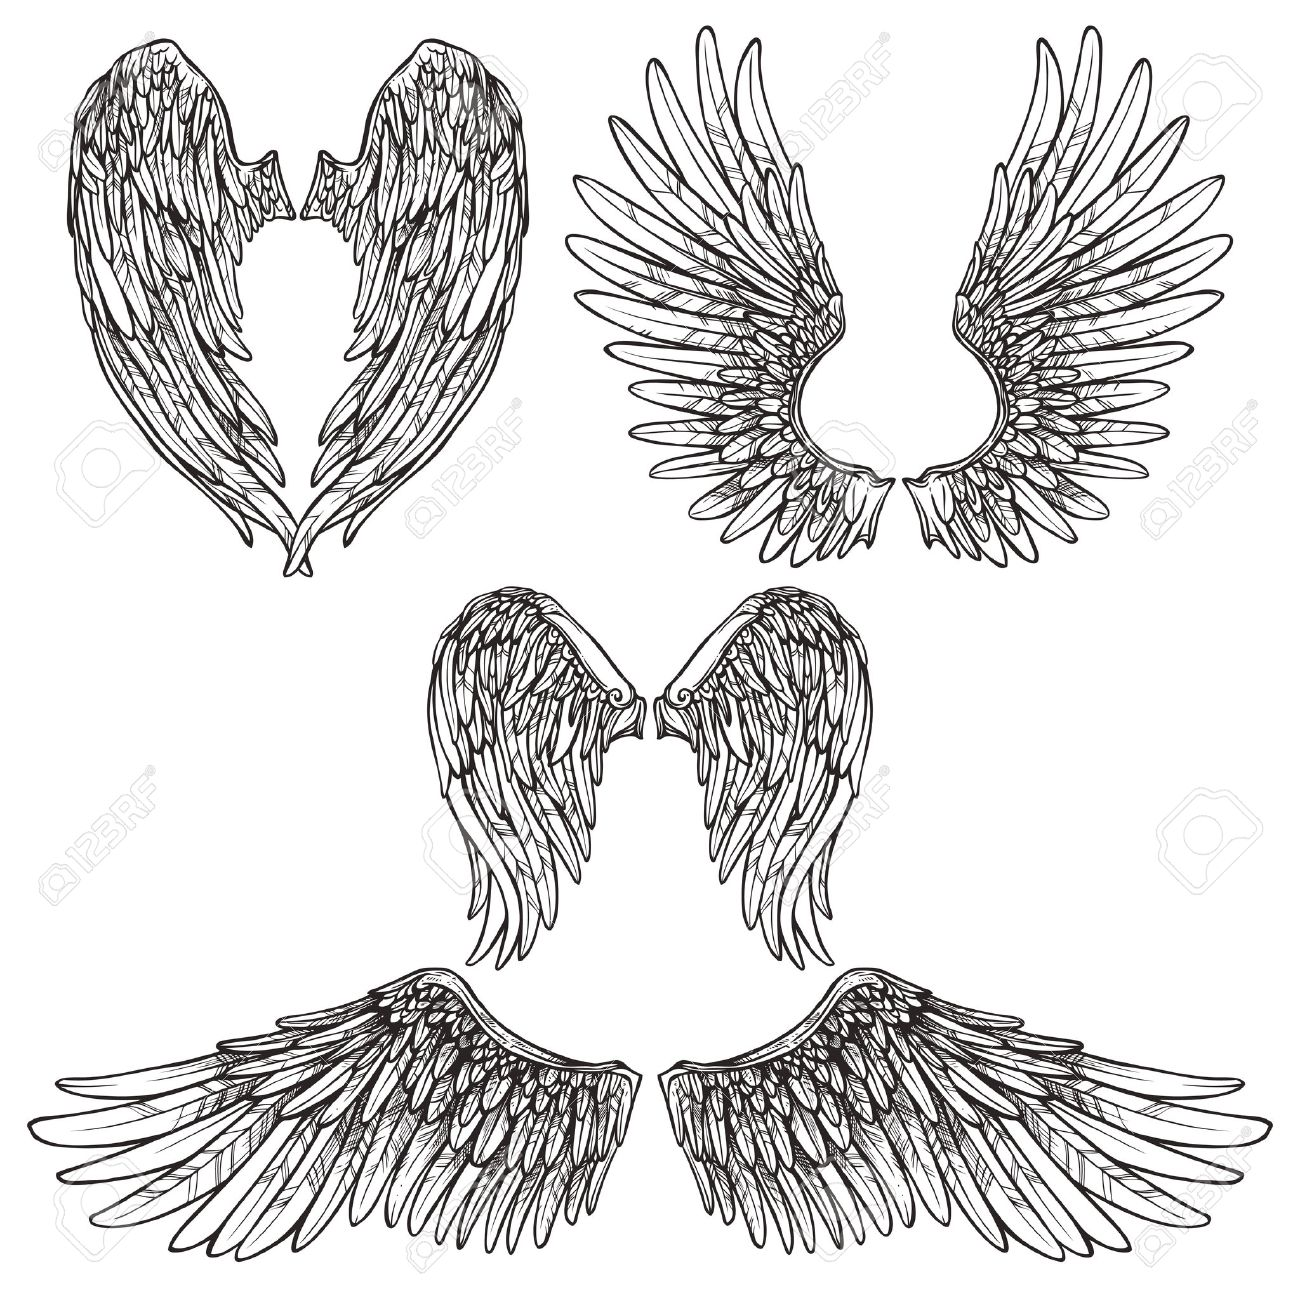 3aabc3481 Angel or bird wings abstract sketch set isolated vector illustration Stock  Vector - 41896459